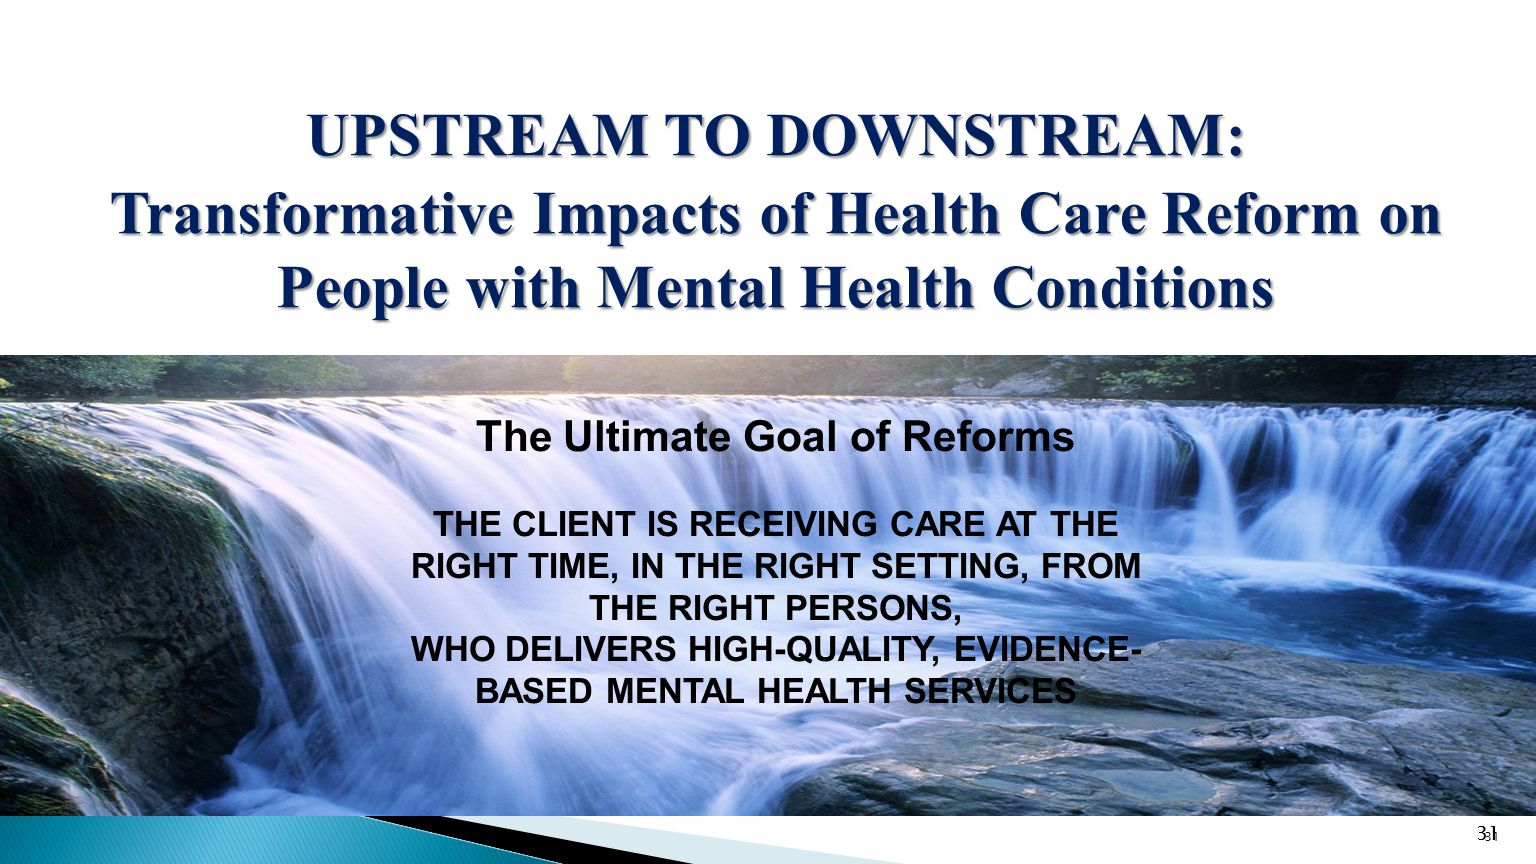 31 UPSTREAM TO DOWNSTREAM: Transformative Impacts of Health Care Reform on People with Mental Health Conditions 31 The Ultimate Goal of Reforms THE CLIENT IS RECEIVING CARE AT THE RIGHT TIME, IN THE RIGHT SETTING, FROM THE RIGHT PERSONS, WHO DELIVERS HIGH-QUALITY, EVIDENCE- BASED MENTAL HEALTH SERVICES